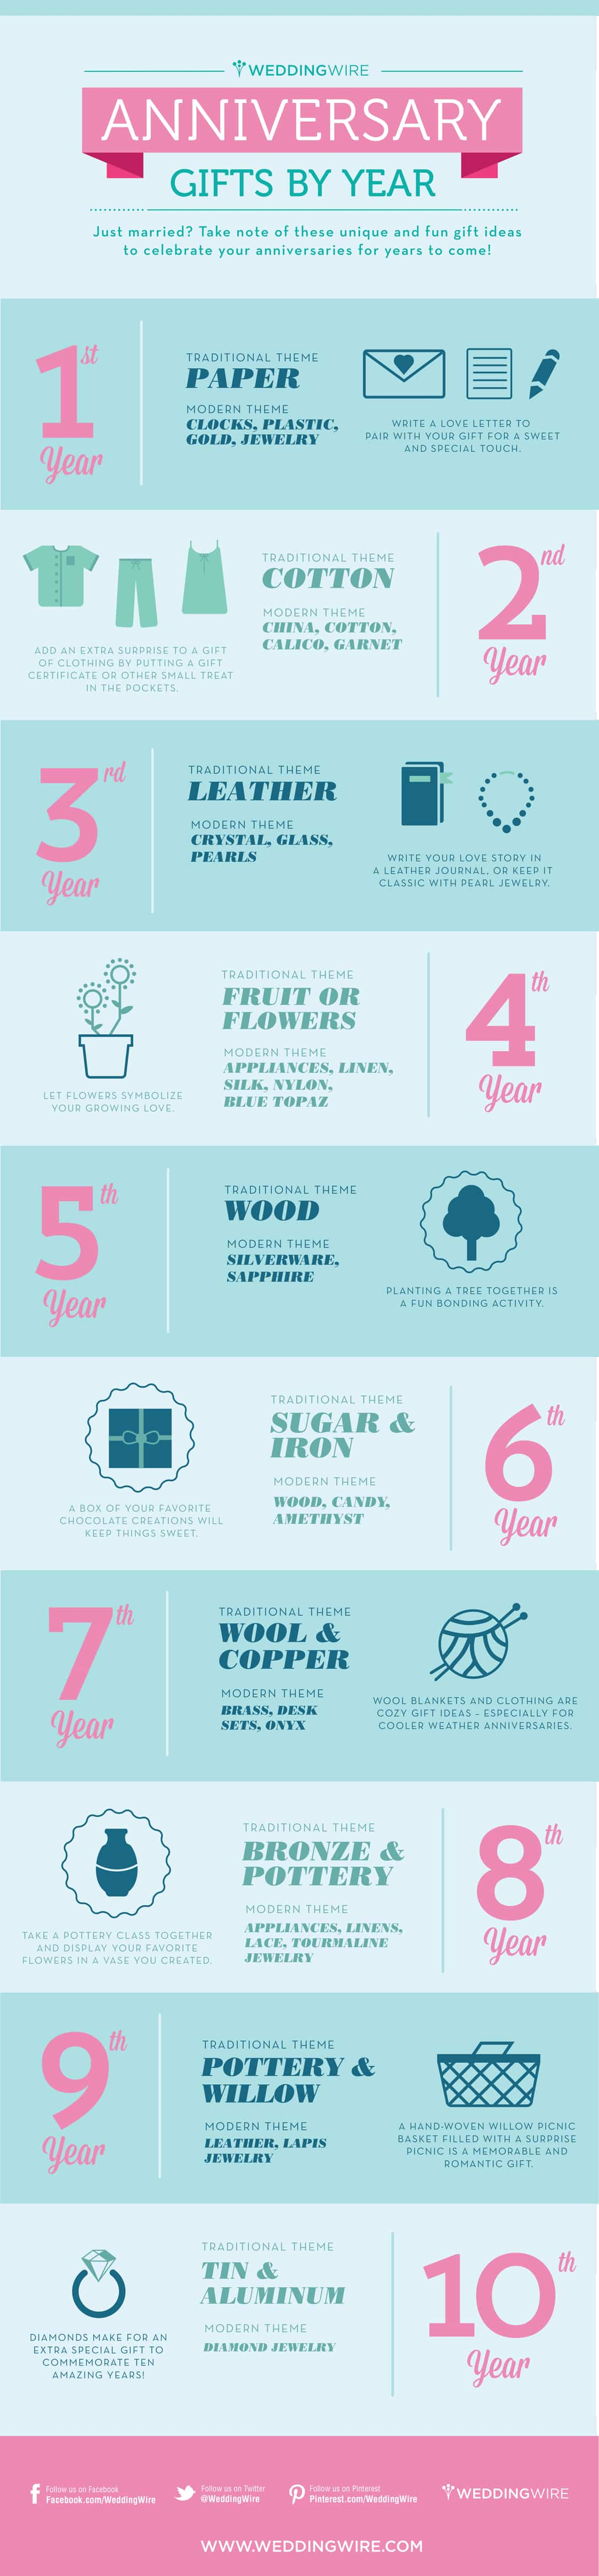 Infographic: Wedding Anniversary Gifts by Year